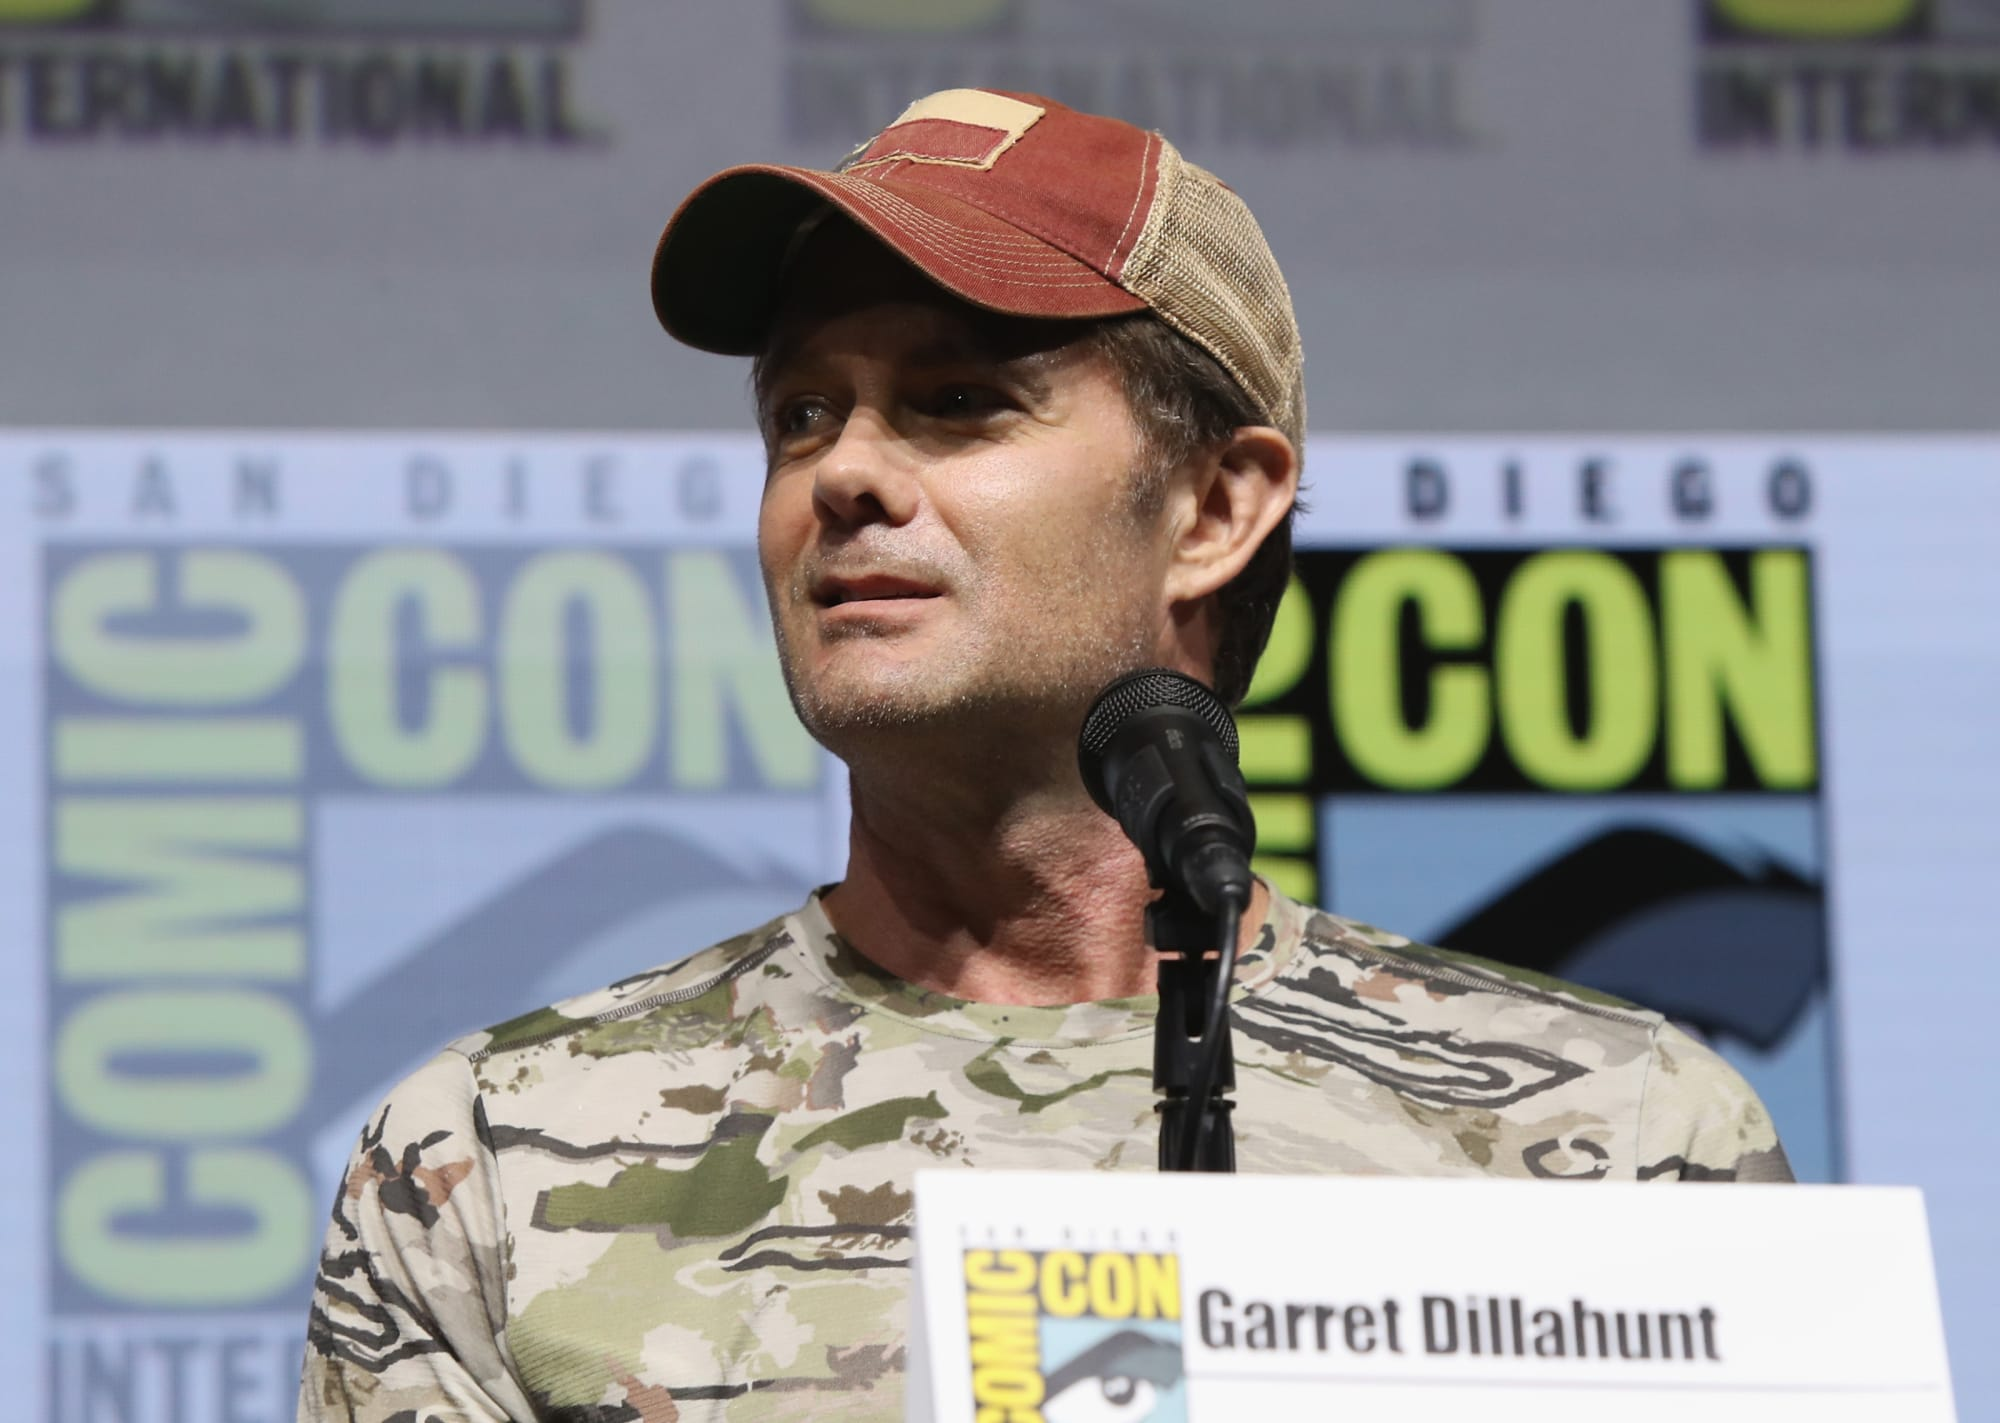 Garret Dillahunt stars in Ambulance movie directed by Michael Bay